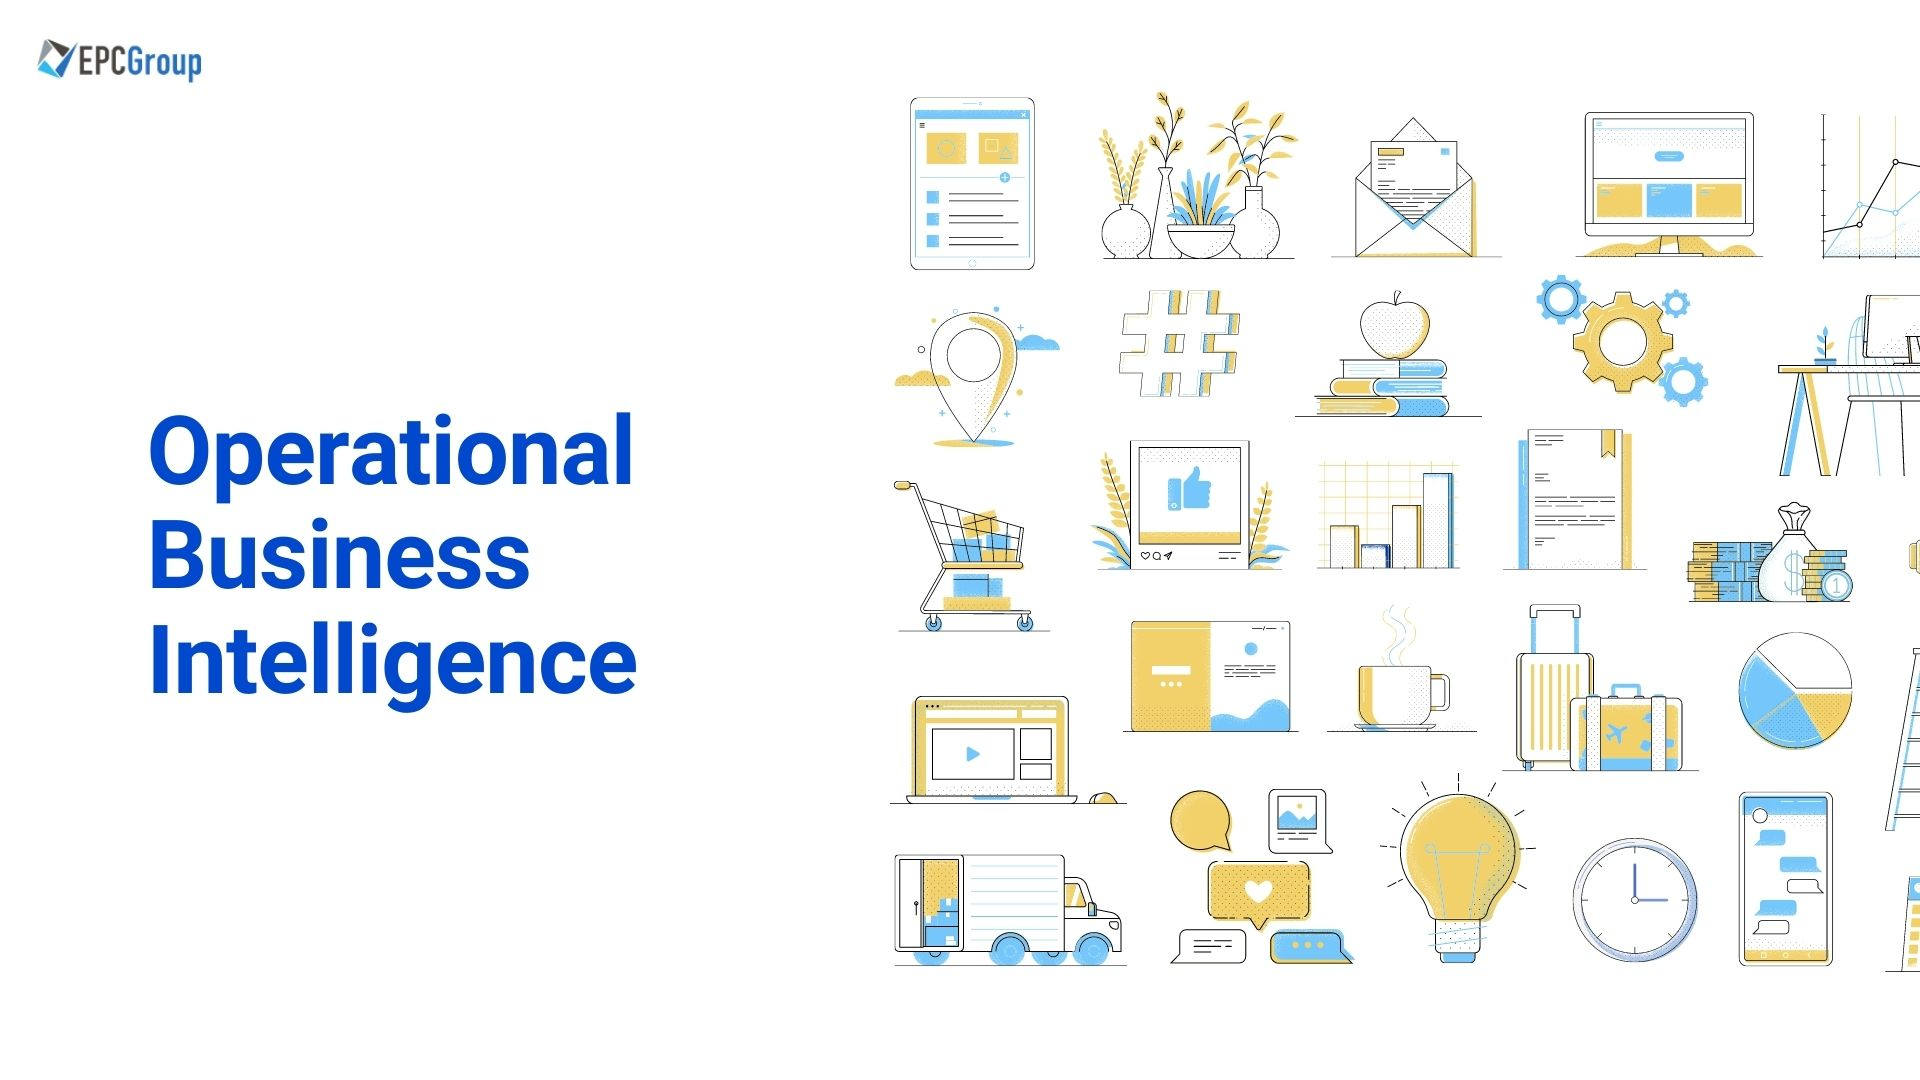 What Is Operational Business Intelligence? - thumb image